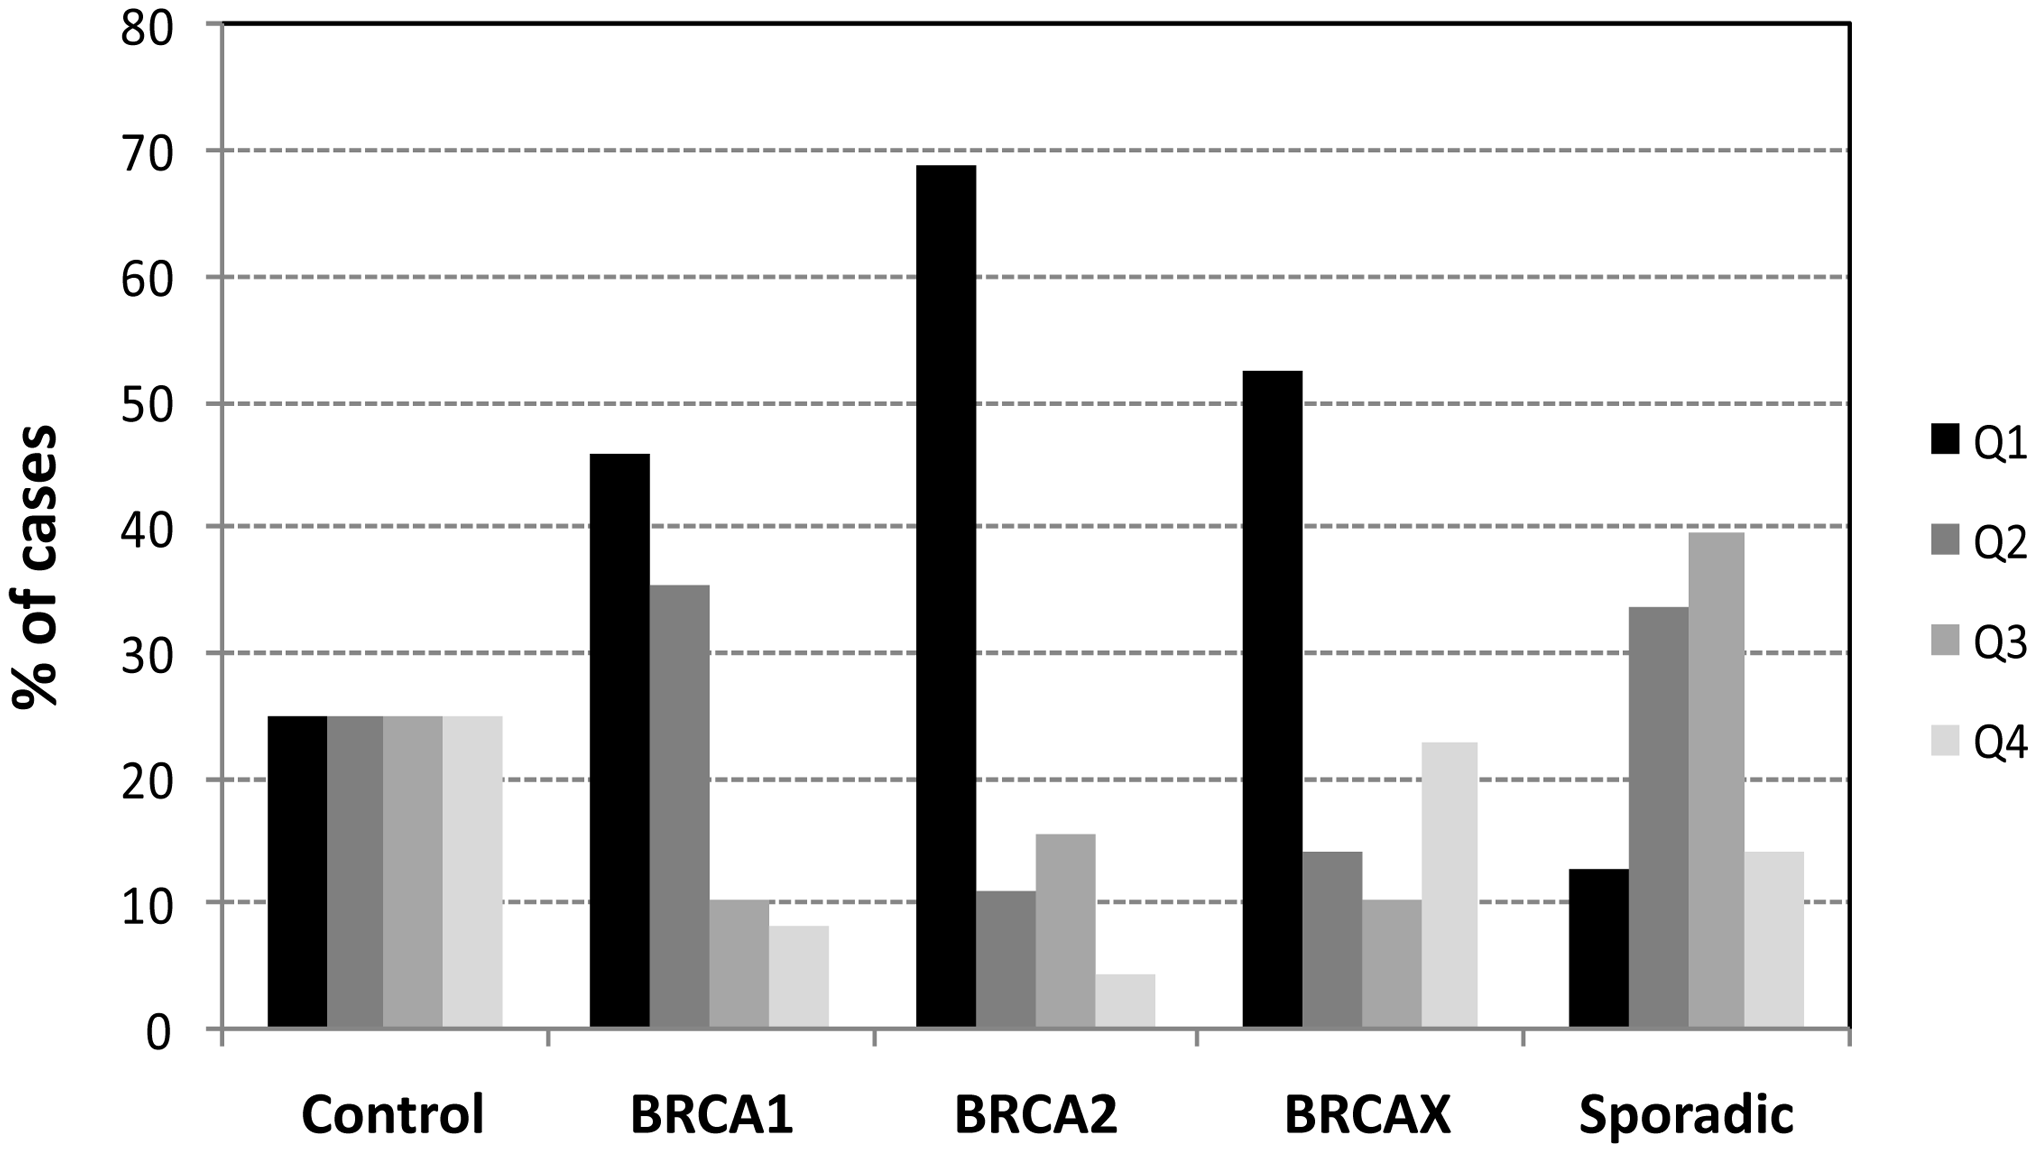 Distribution of hereditary and sporadic breast cancer cases by quartiles of telomere length.